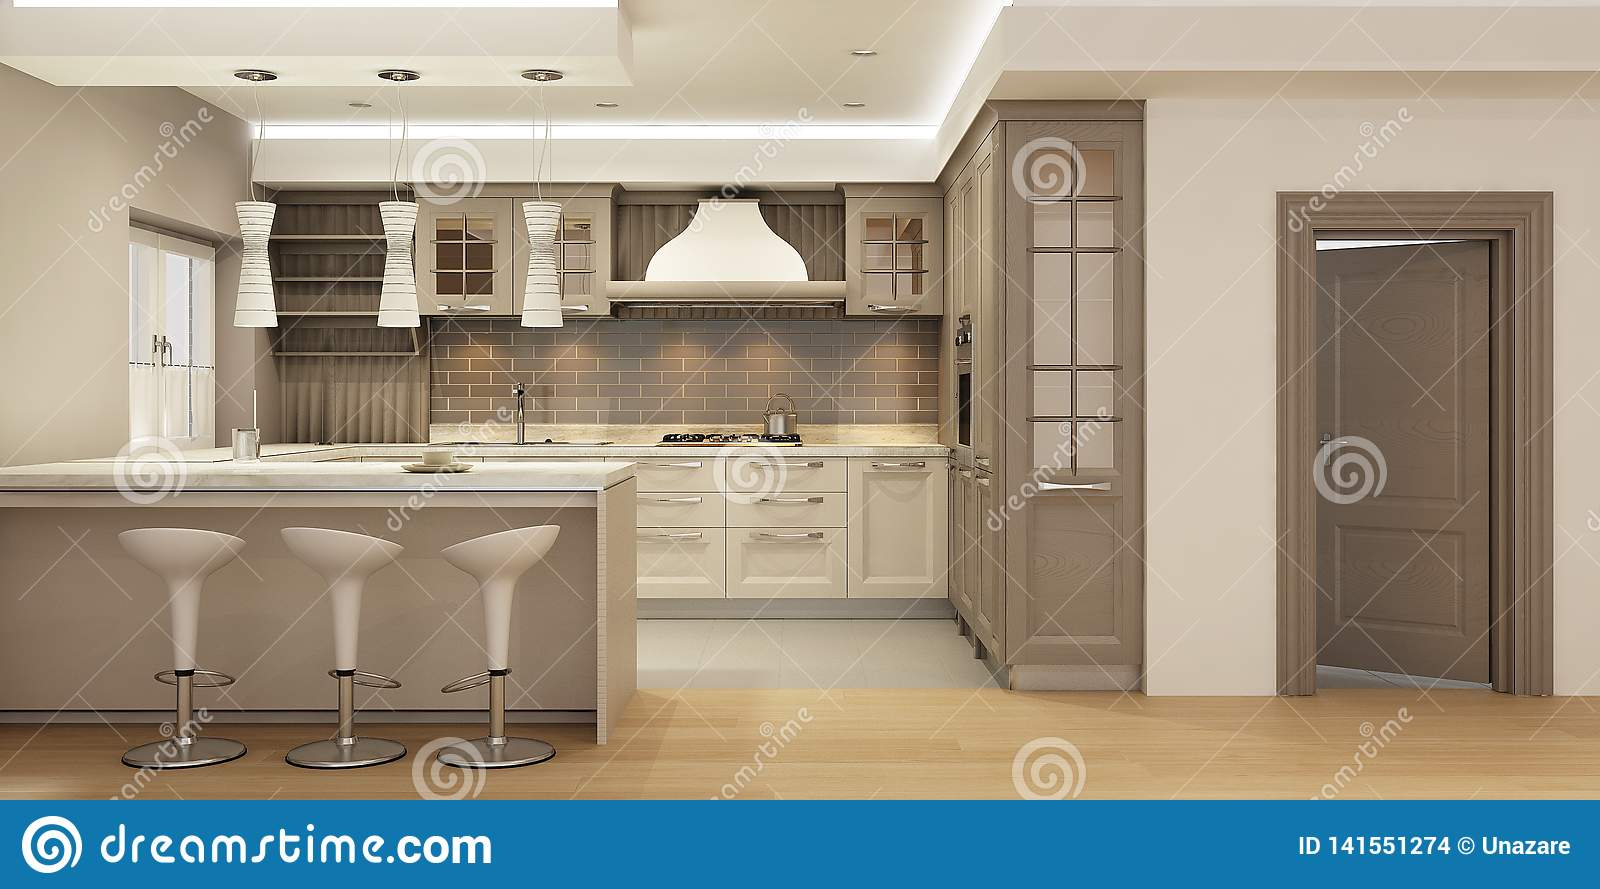 Modern Kitchen Interior In Classic Style With Wooden Facades In Neutral Colors Stock Illustration Illustration Of Chair Flat 141551274